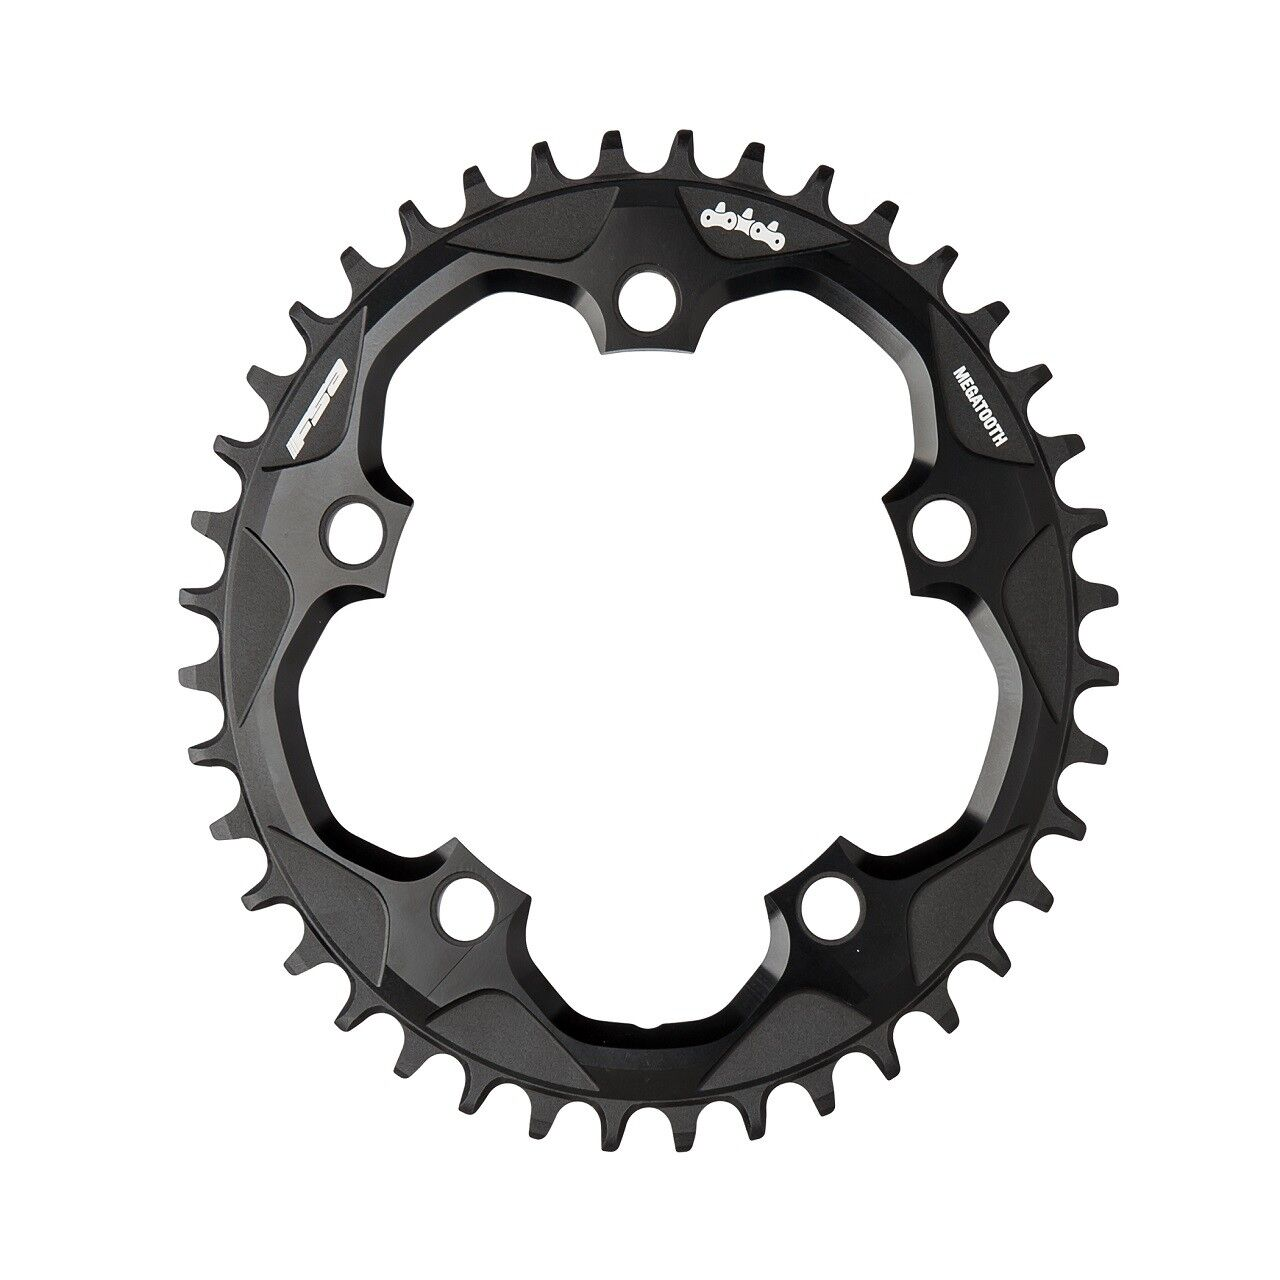 FSA Megatooth Replacement 1 x 11 Chainring 110BCD x 40t